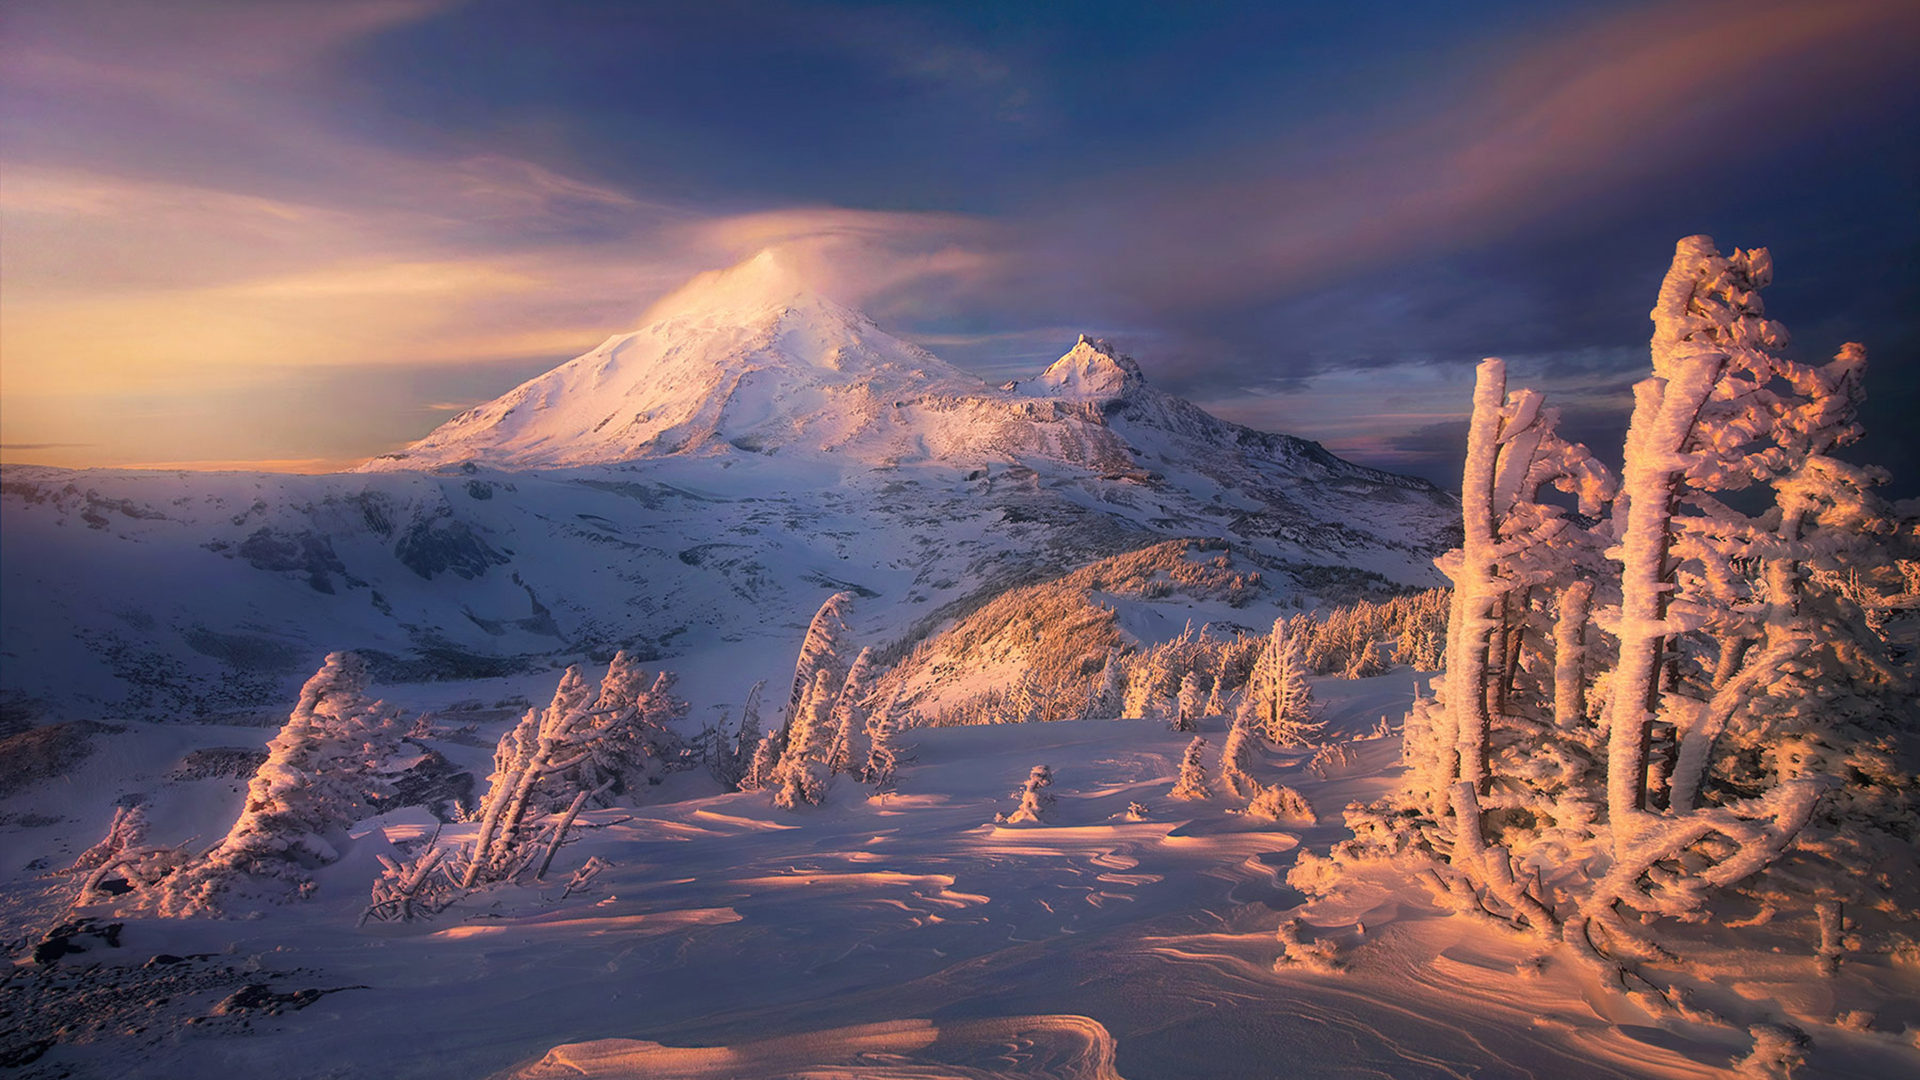 Fall Wallpaper For Android Tablet Winter Landscape Blackout Mountains With Snow Three